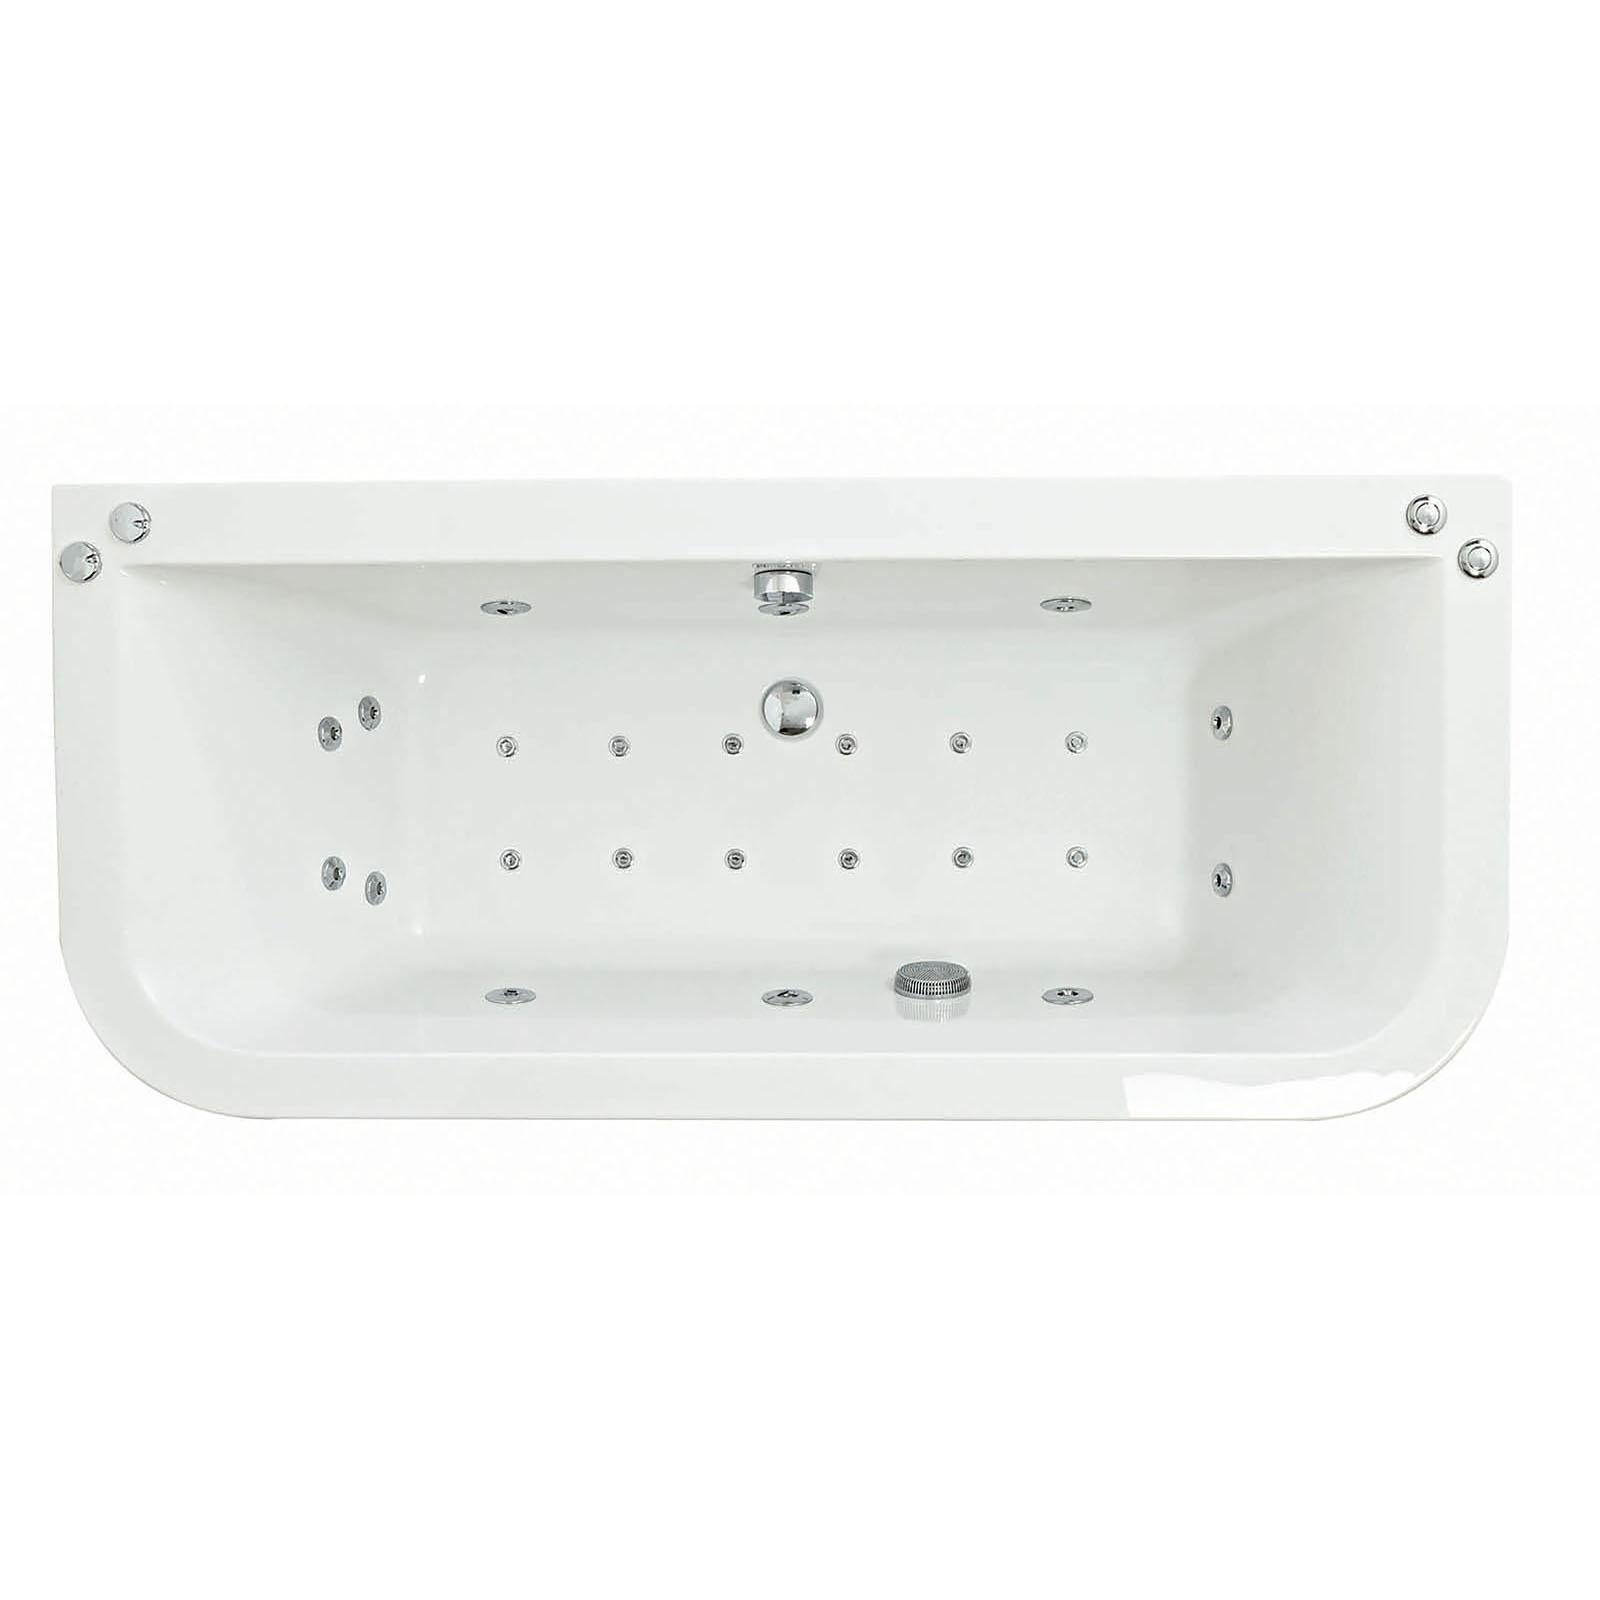 Flush Jaye - Super Strength 1750 x 700 mm Double Ended Whirlpool And ...